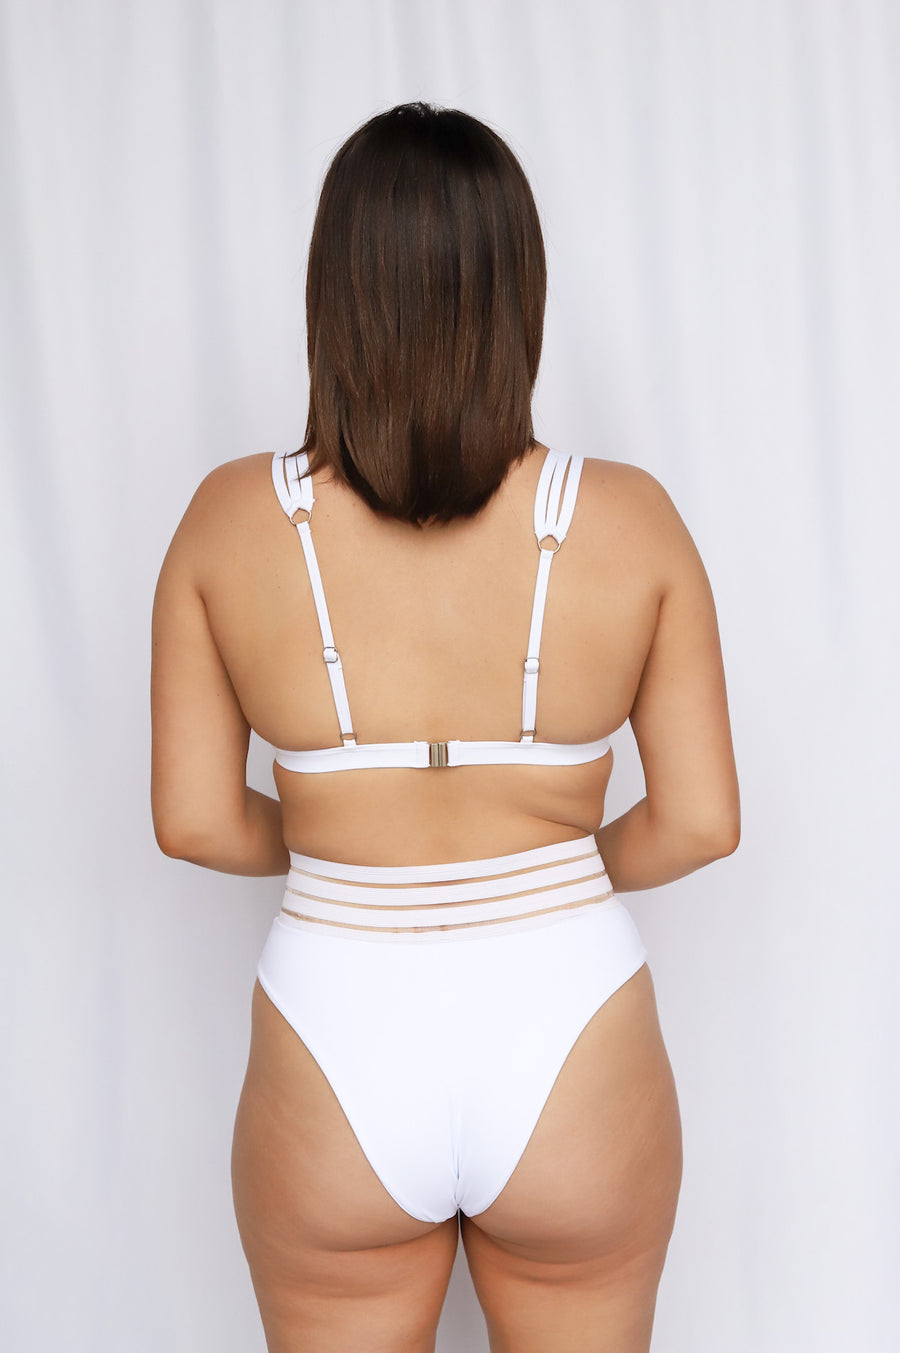 Dallas, Dallas boutique, DFW boutique, women's boutique, dallas women's boutique, dfw women's boutique, new, brand new, new arrivals, clothing, swim, swimsuit, white swimsuit, white cheeky bottoms, cheeky swim bottoms, mesh swim bottoms, honeymoon bikini, bachelorette bikini